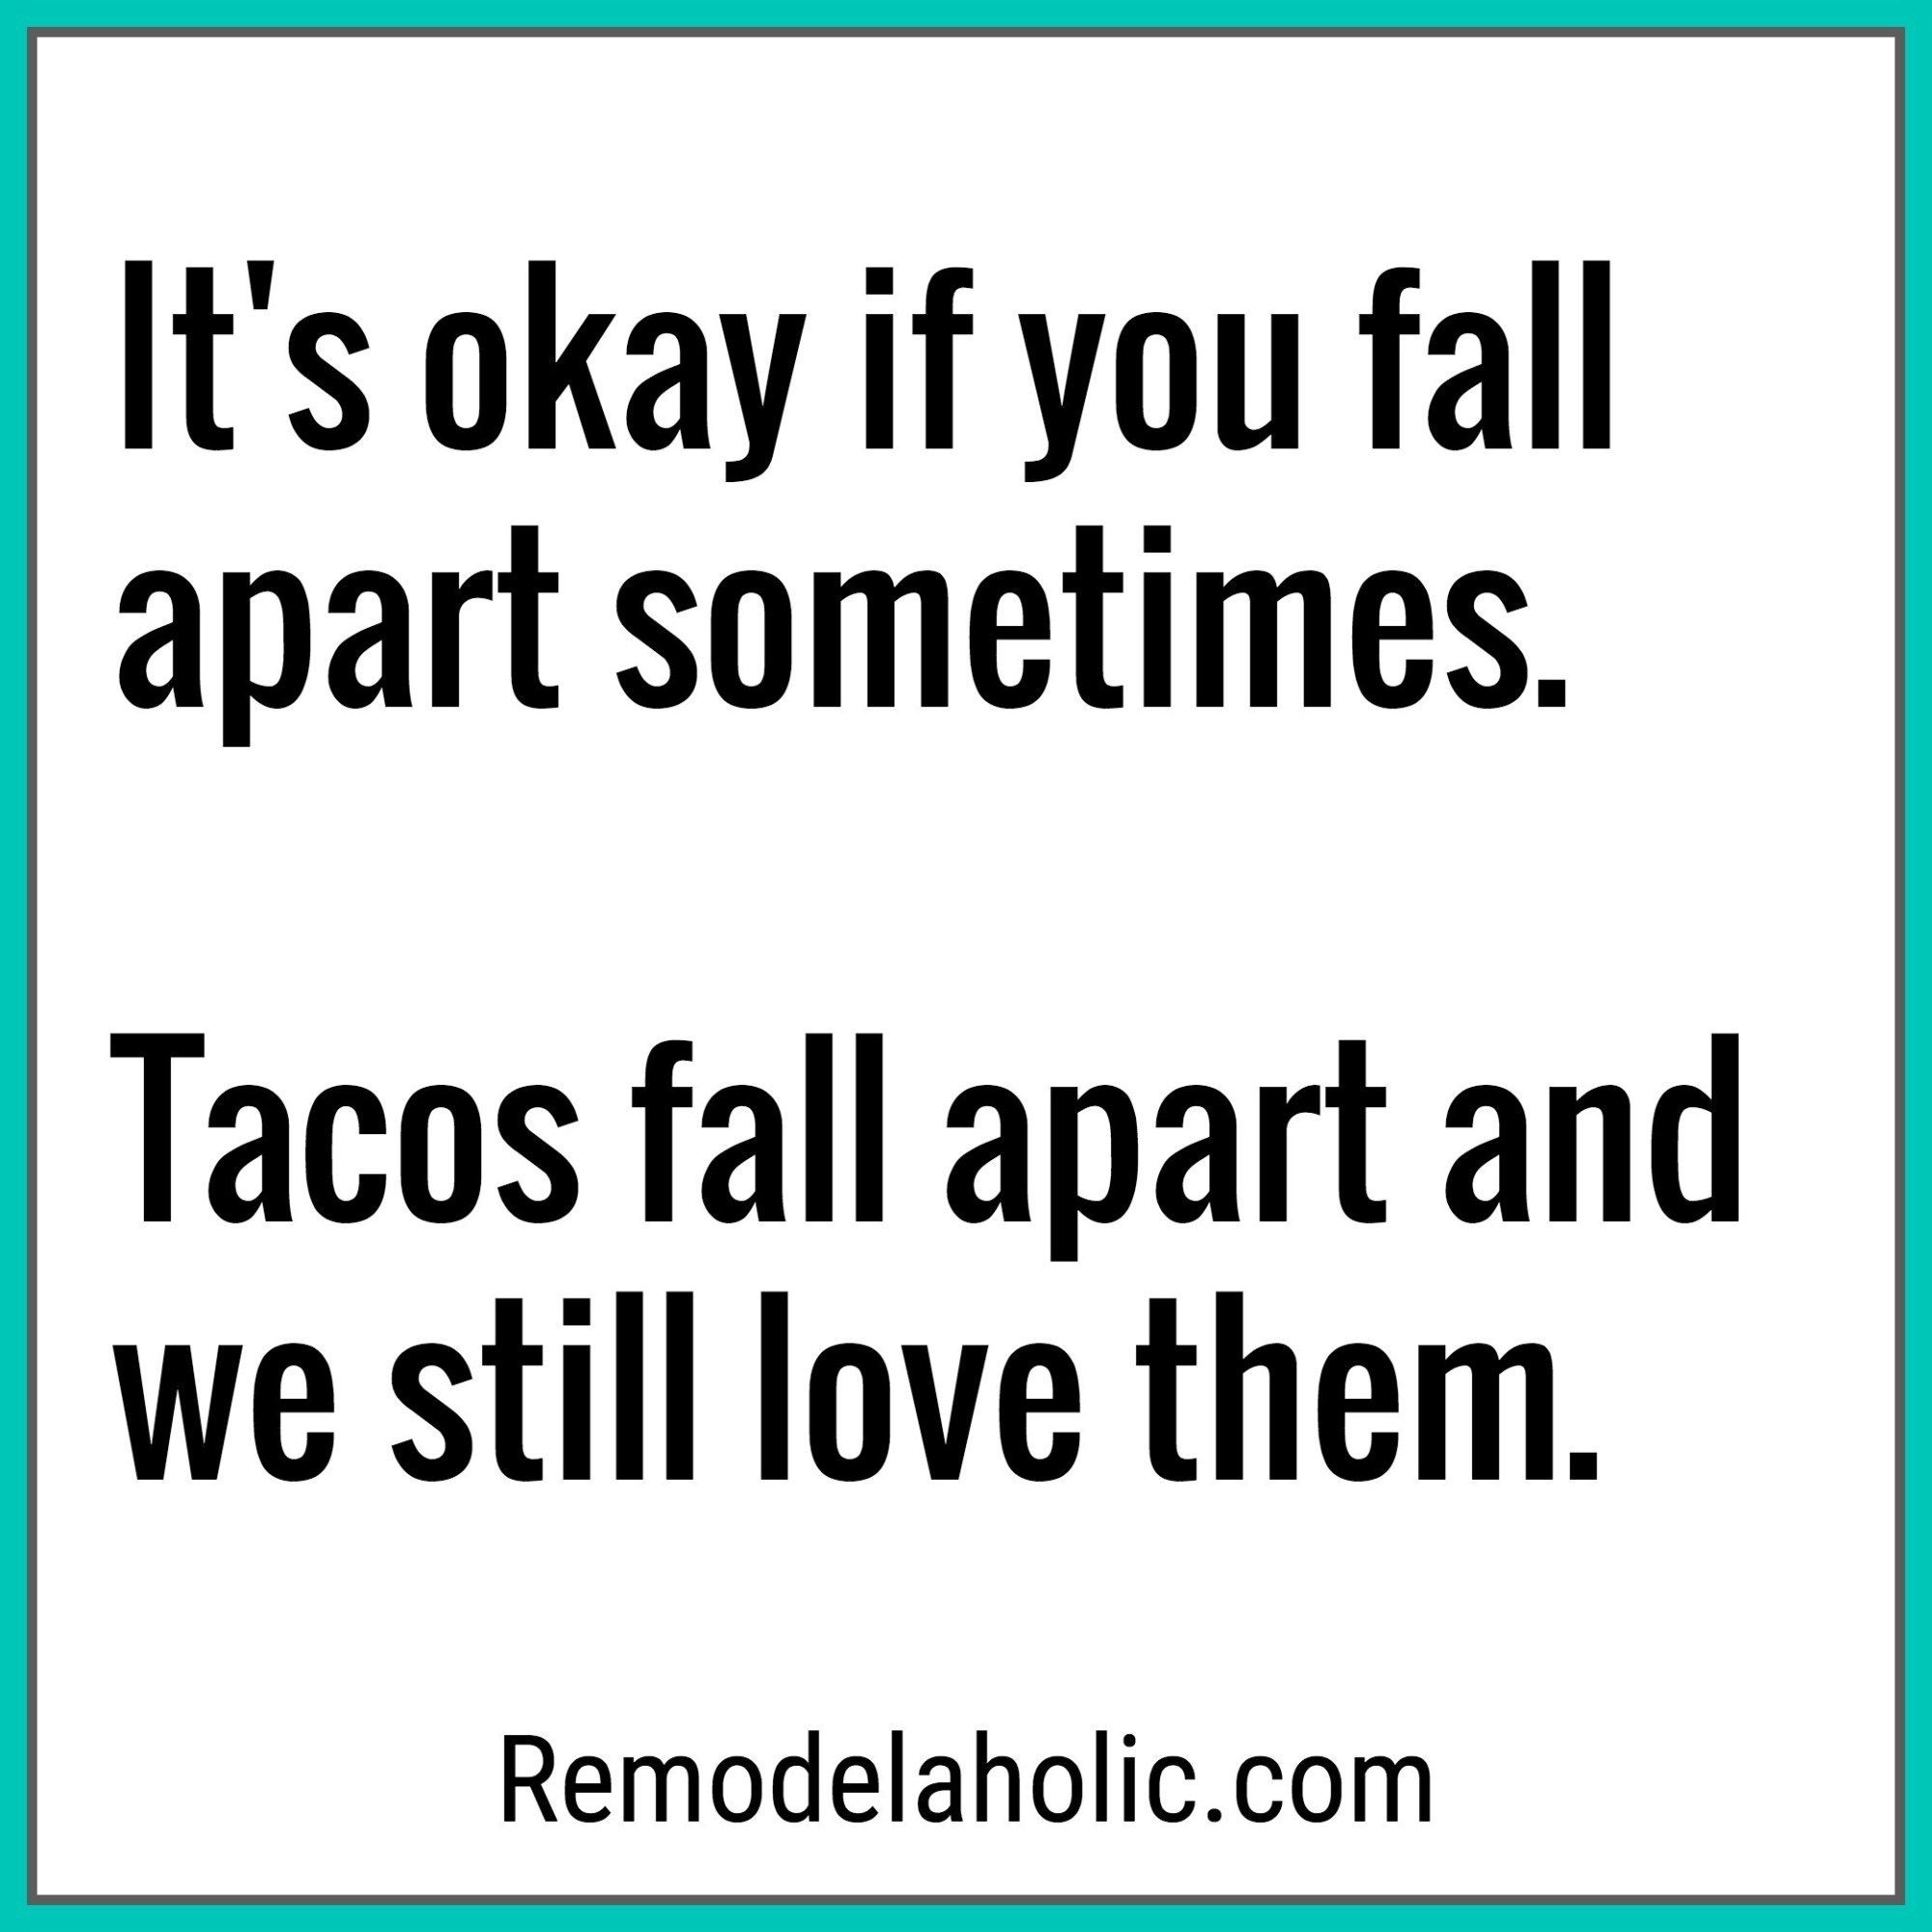 We Still Love Tacos Even Though They Fall Apart Meme Remodelaholic Com Funnyquotes Funnymemes Tacos Tacotuesda Funny Quotes True Quotes Friday Quotes Funny